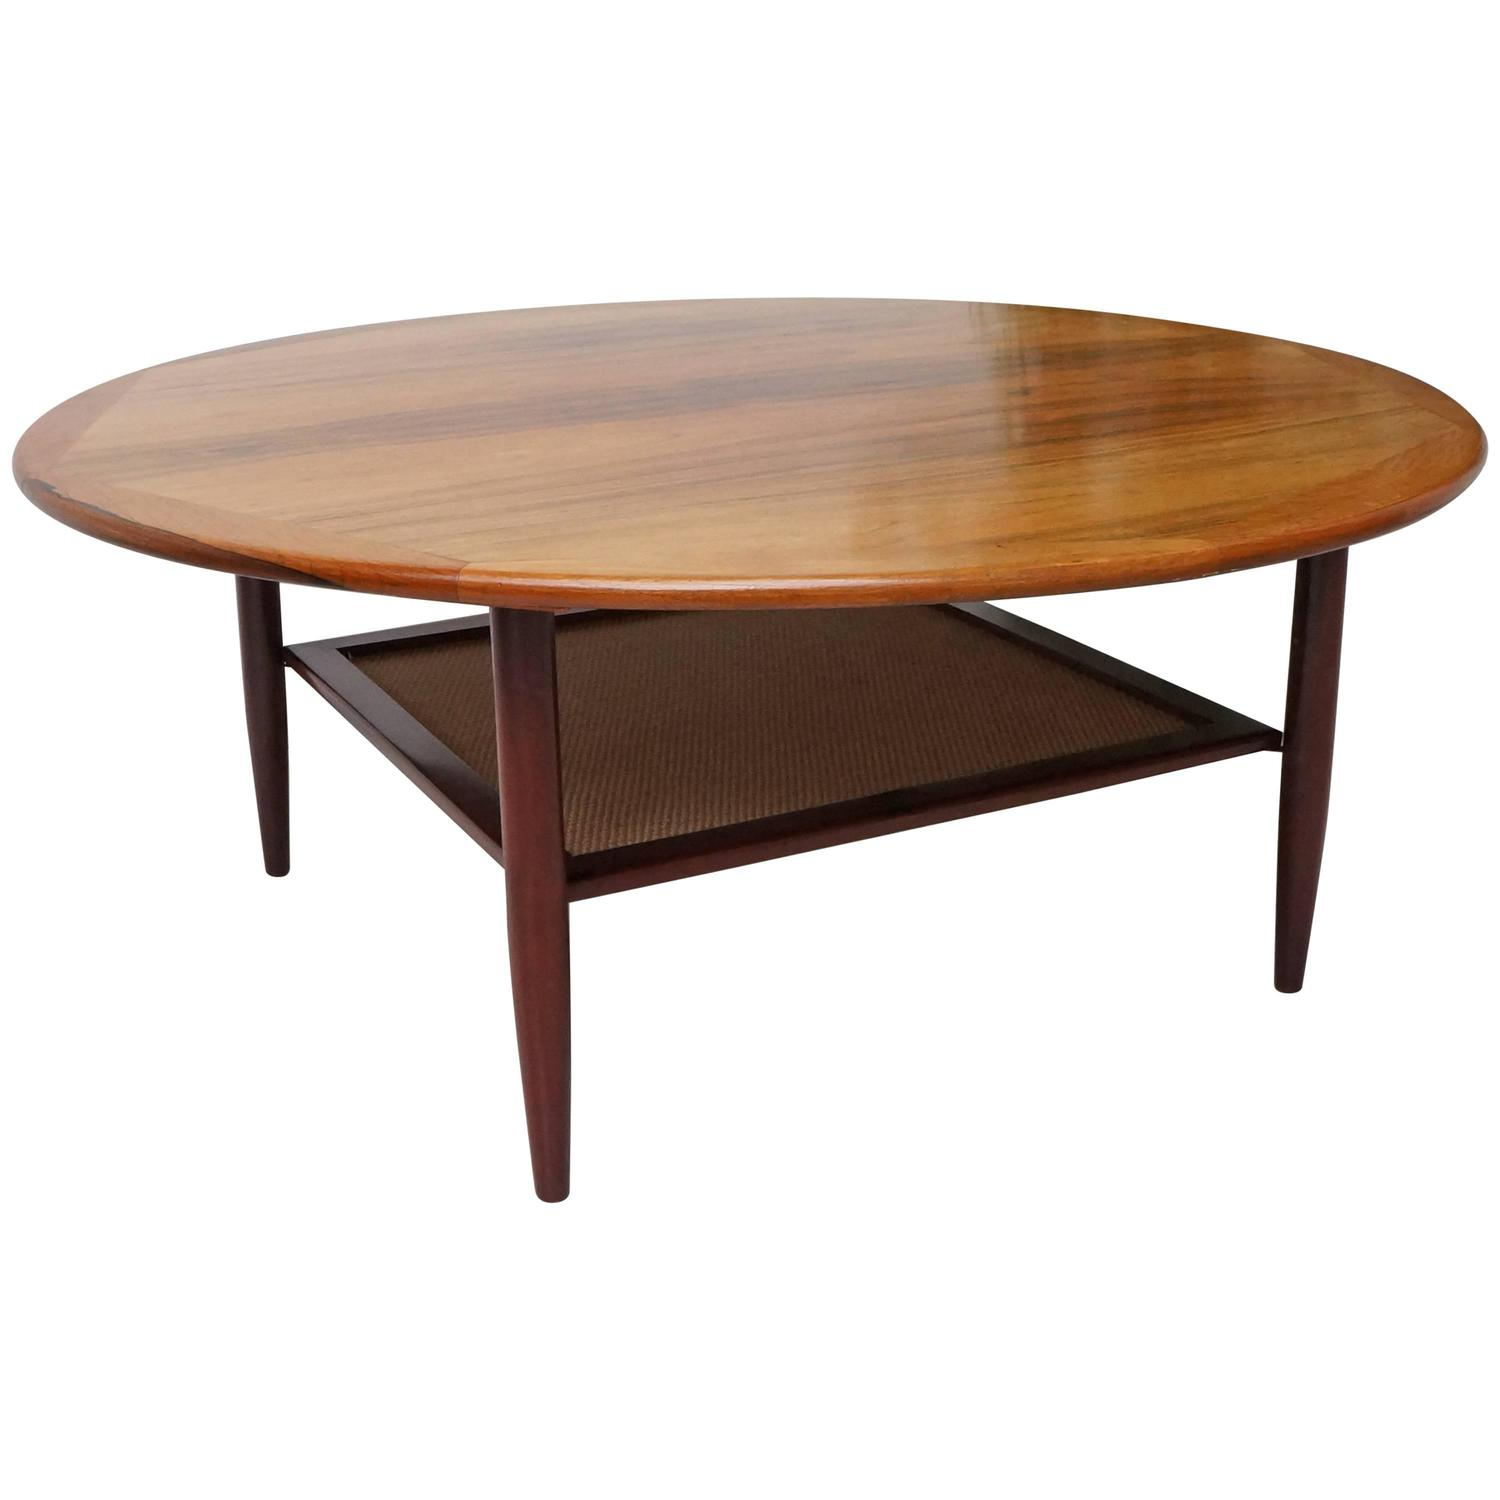 Large Round Wooden Coffee Table 1960s At 1stdibs